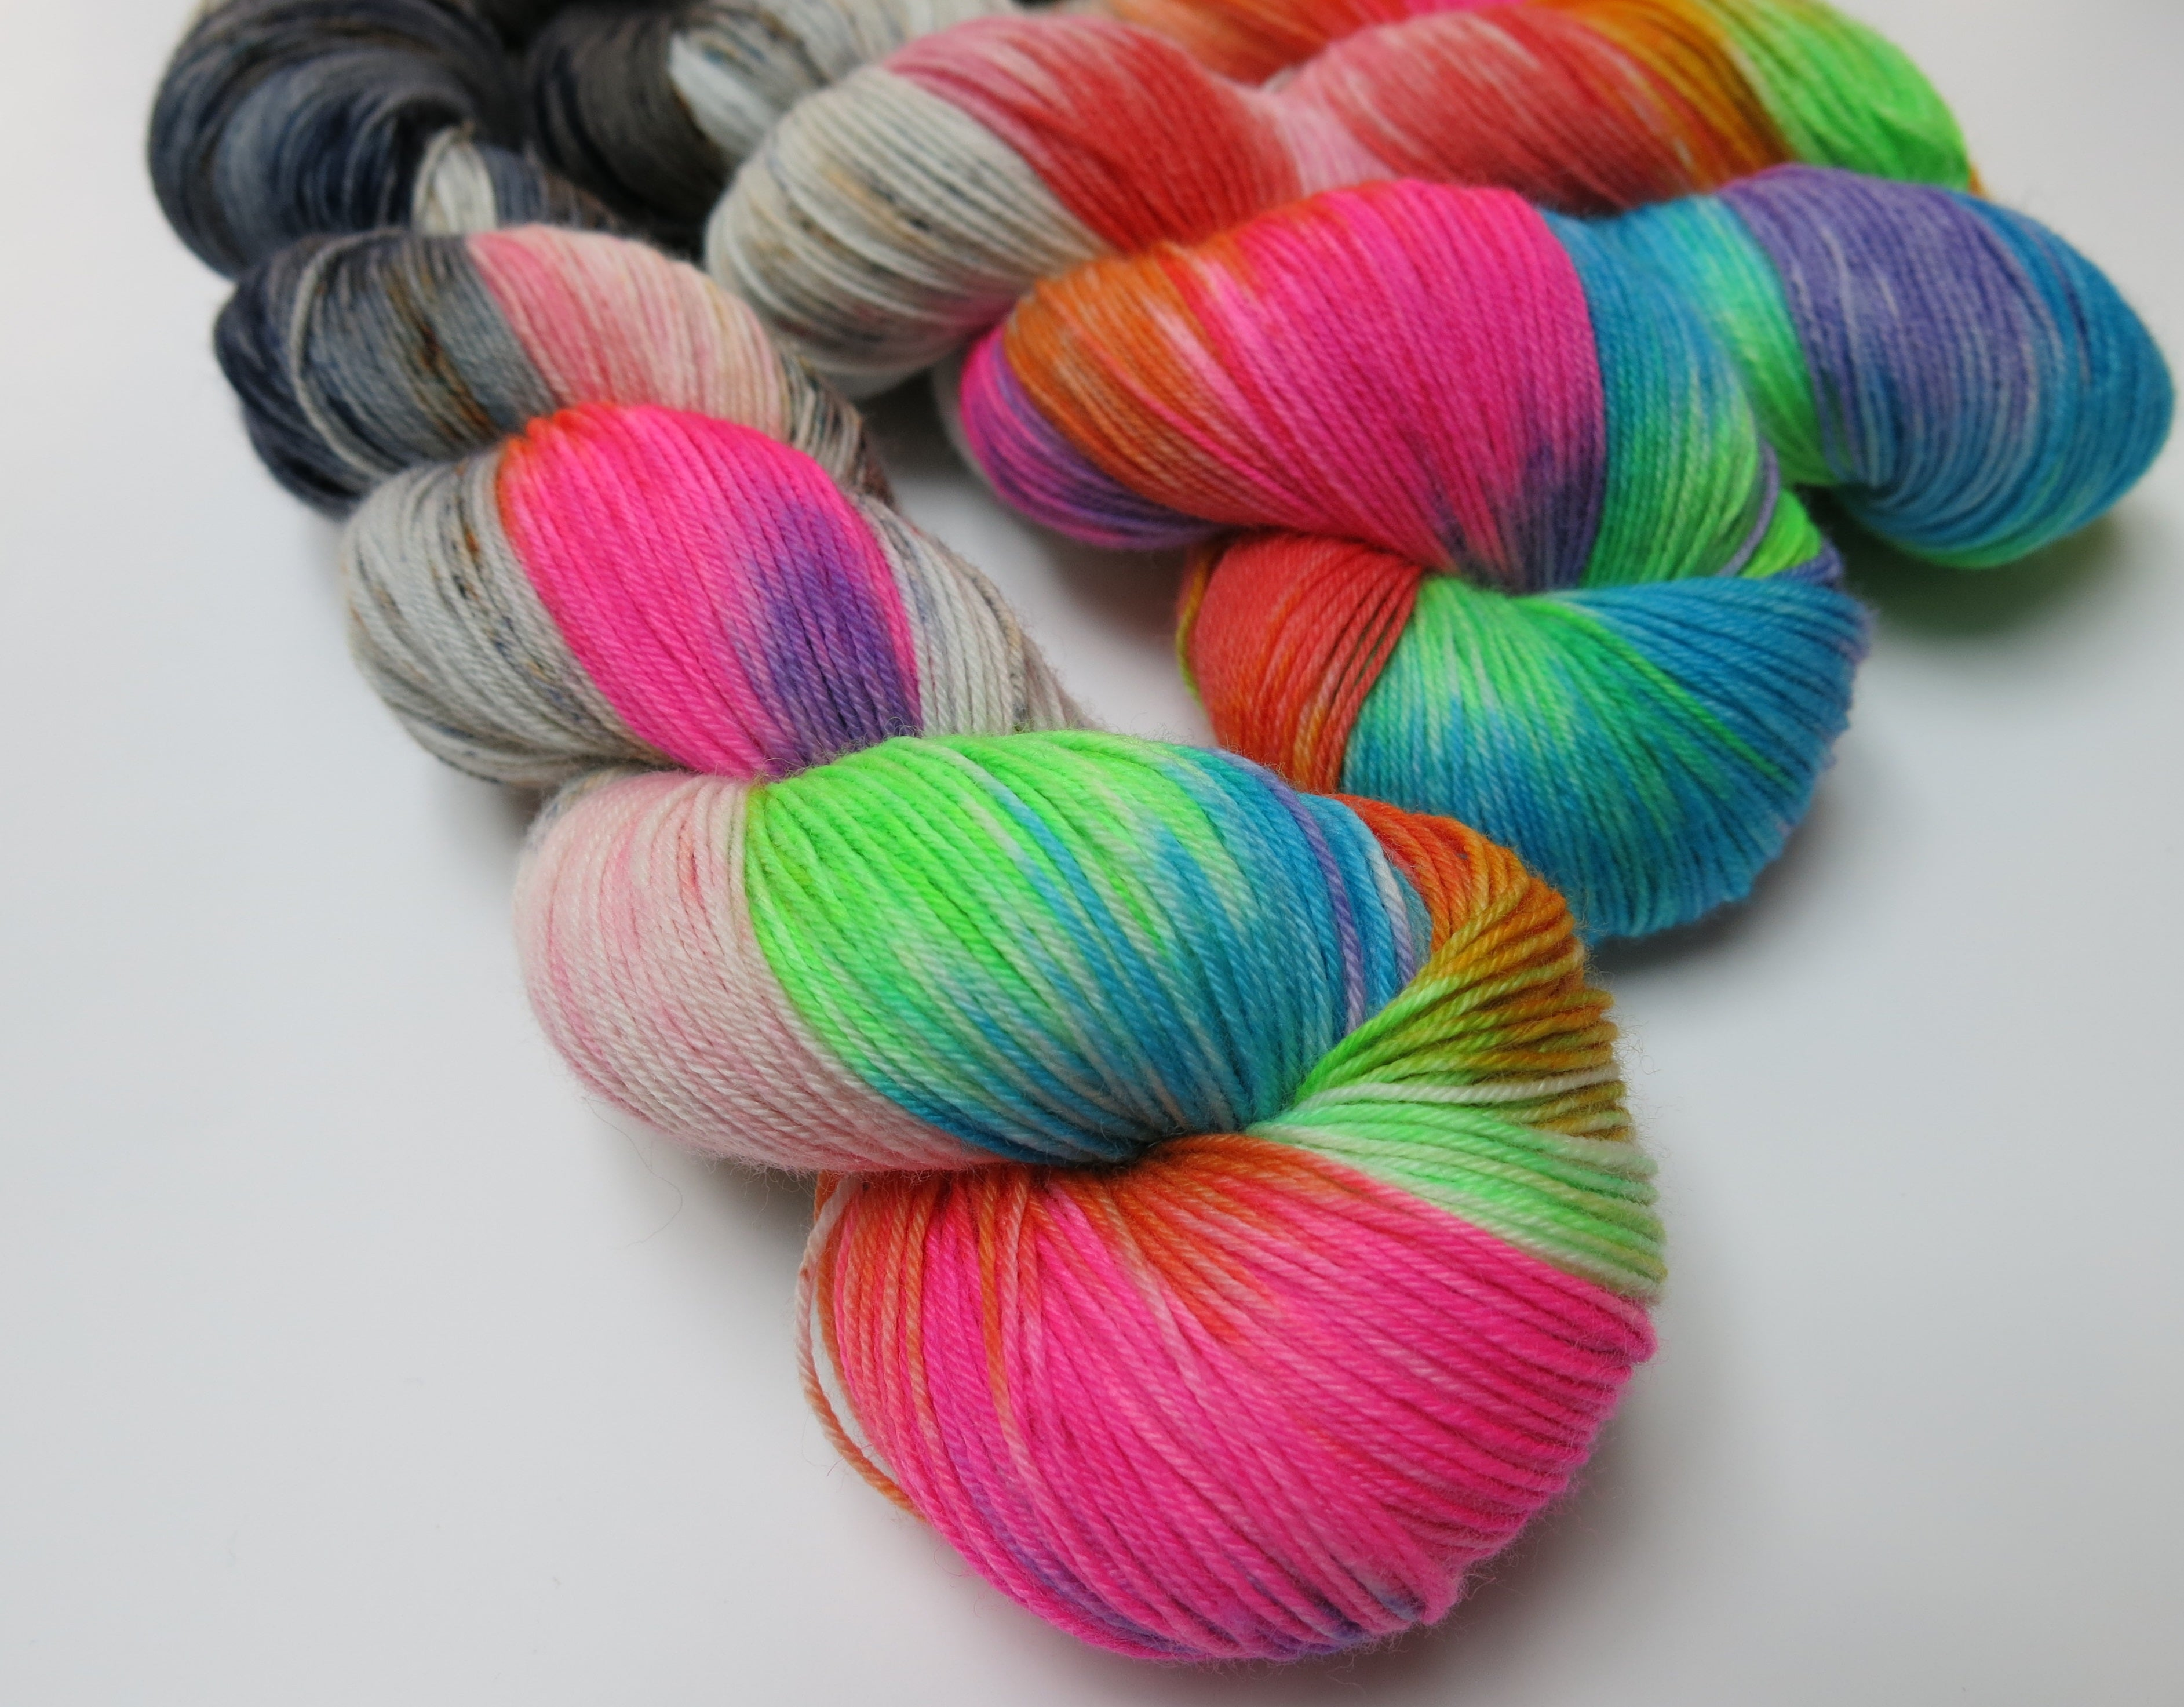 neon and grey superwash merino sock yarn for knitting and crochet